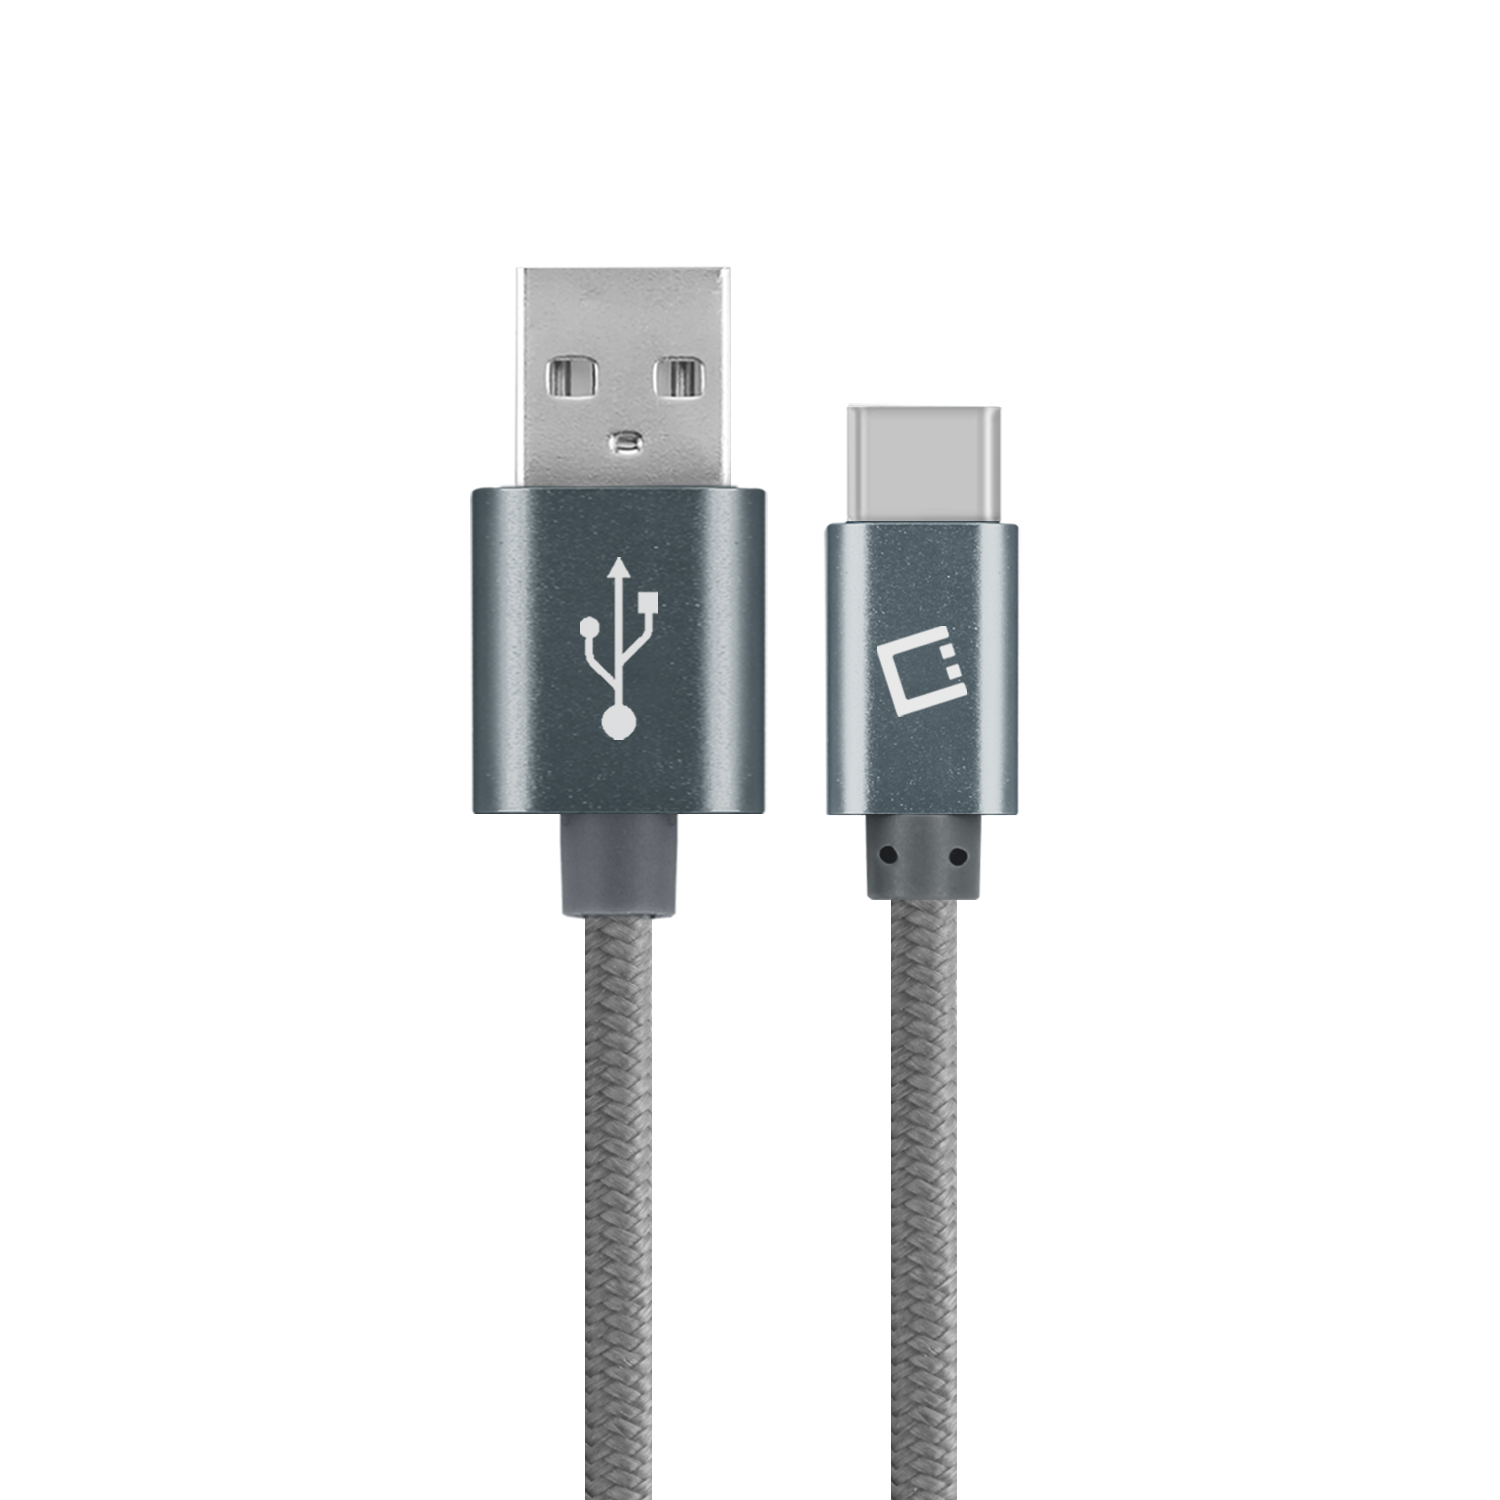 Samsung Galaxy S9 USB Type-C To Type-A Braided Data Power Cable Grey 10ft Braided